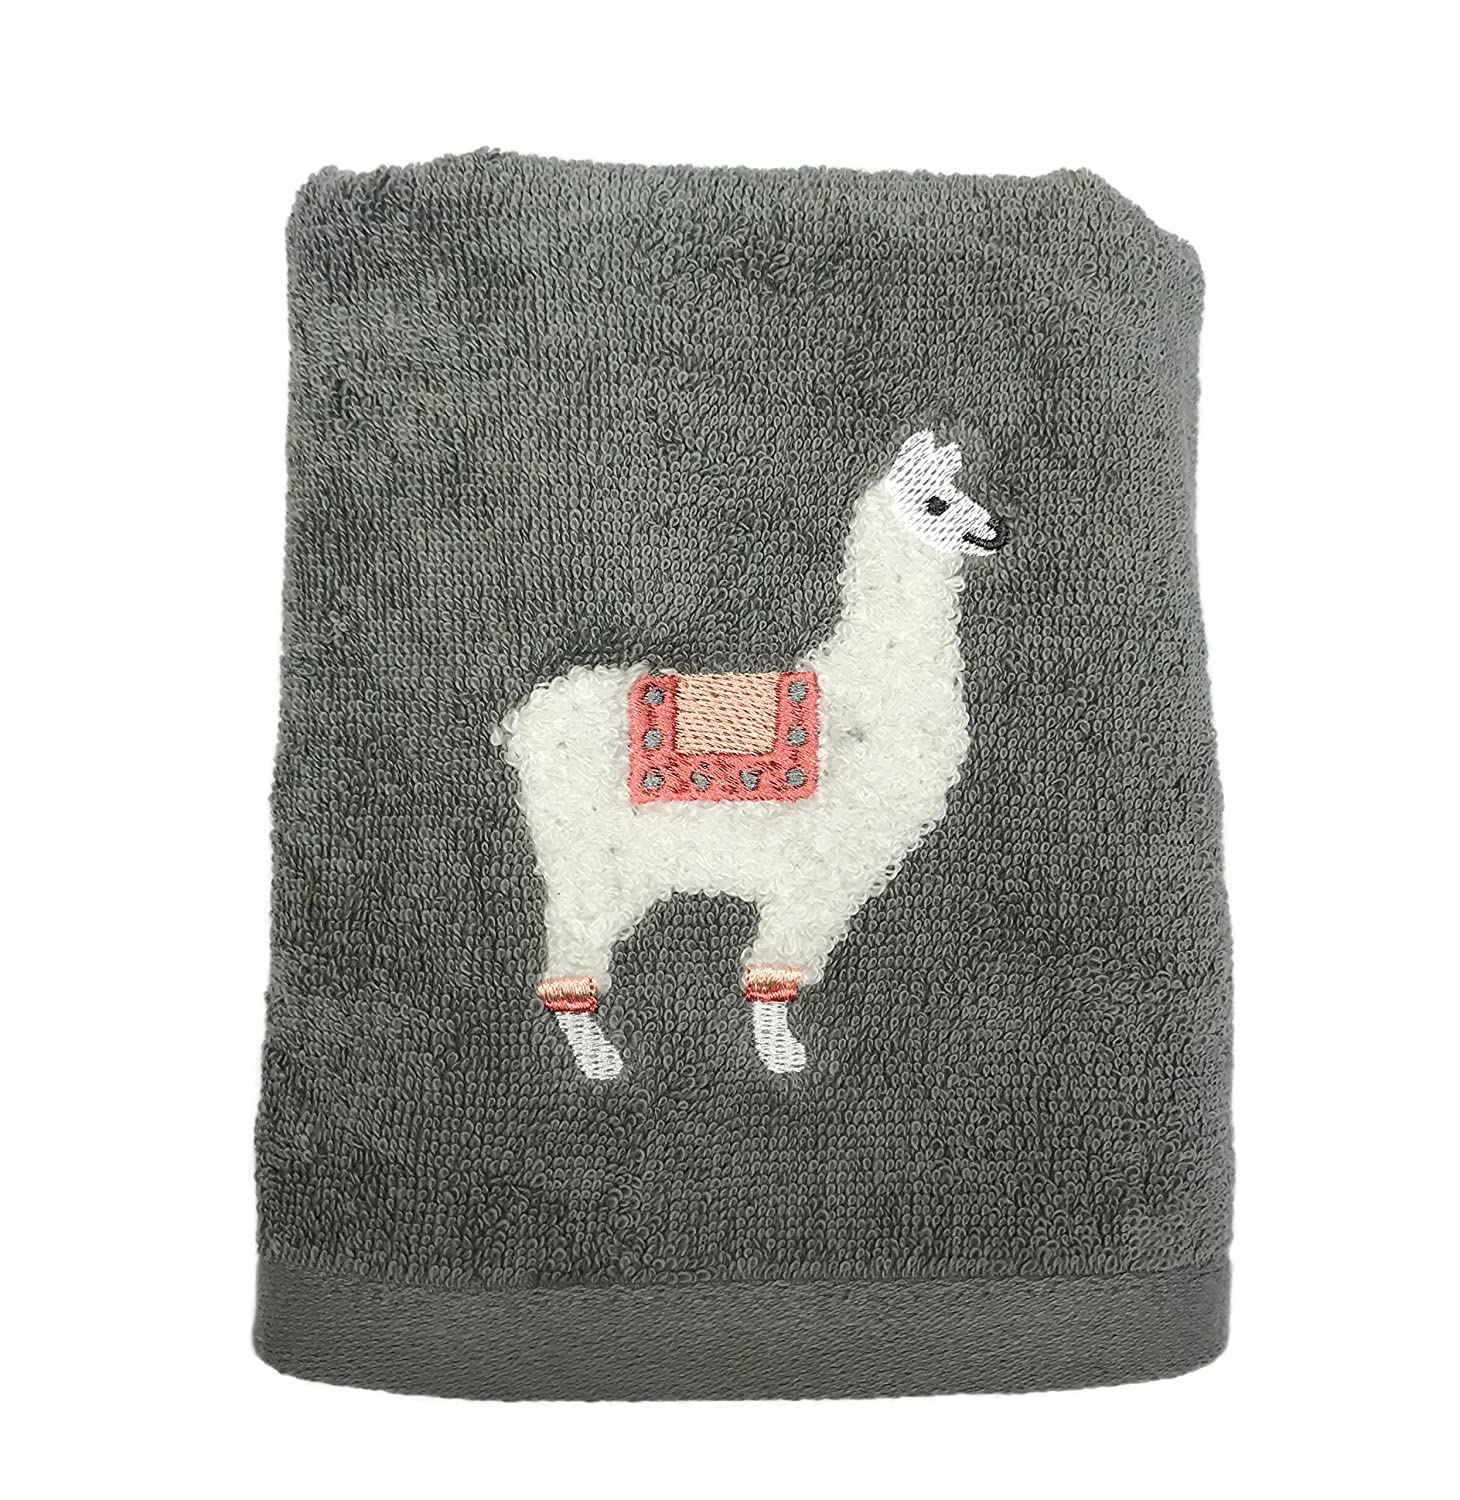 Whimsical Knotted Stitch Embroidery Fuzzy Llama Themed Decorative Bathroom Towels (Bath Towel) Deborah Connolly Designs